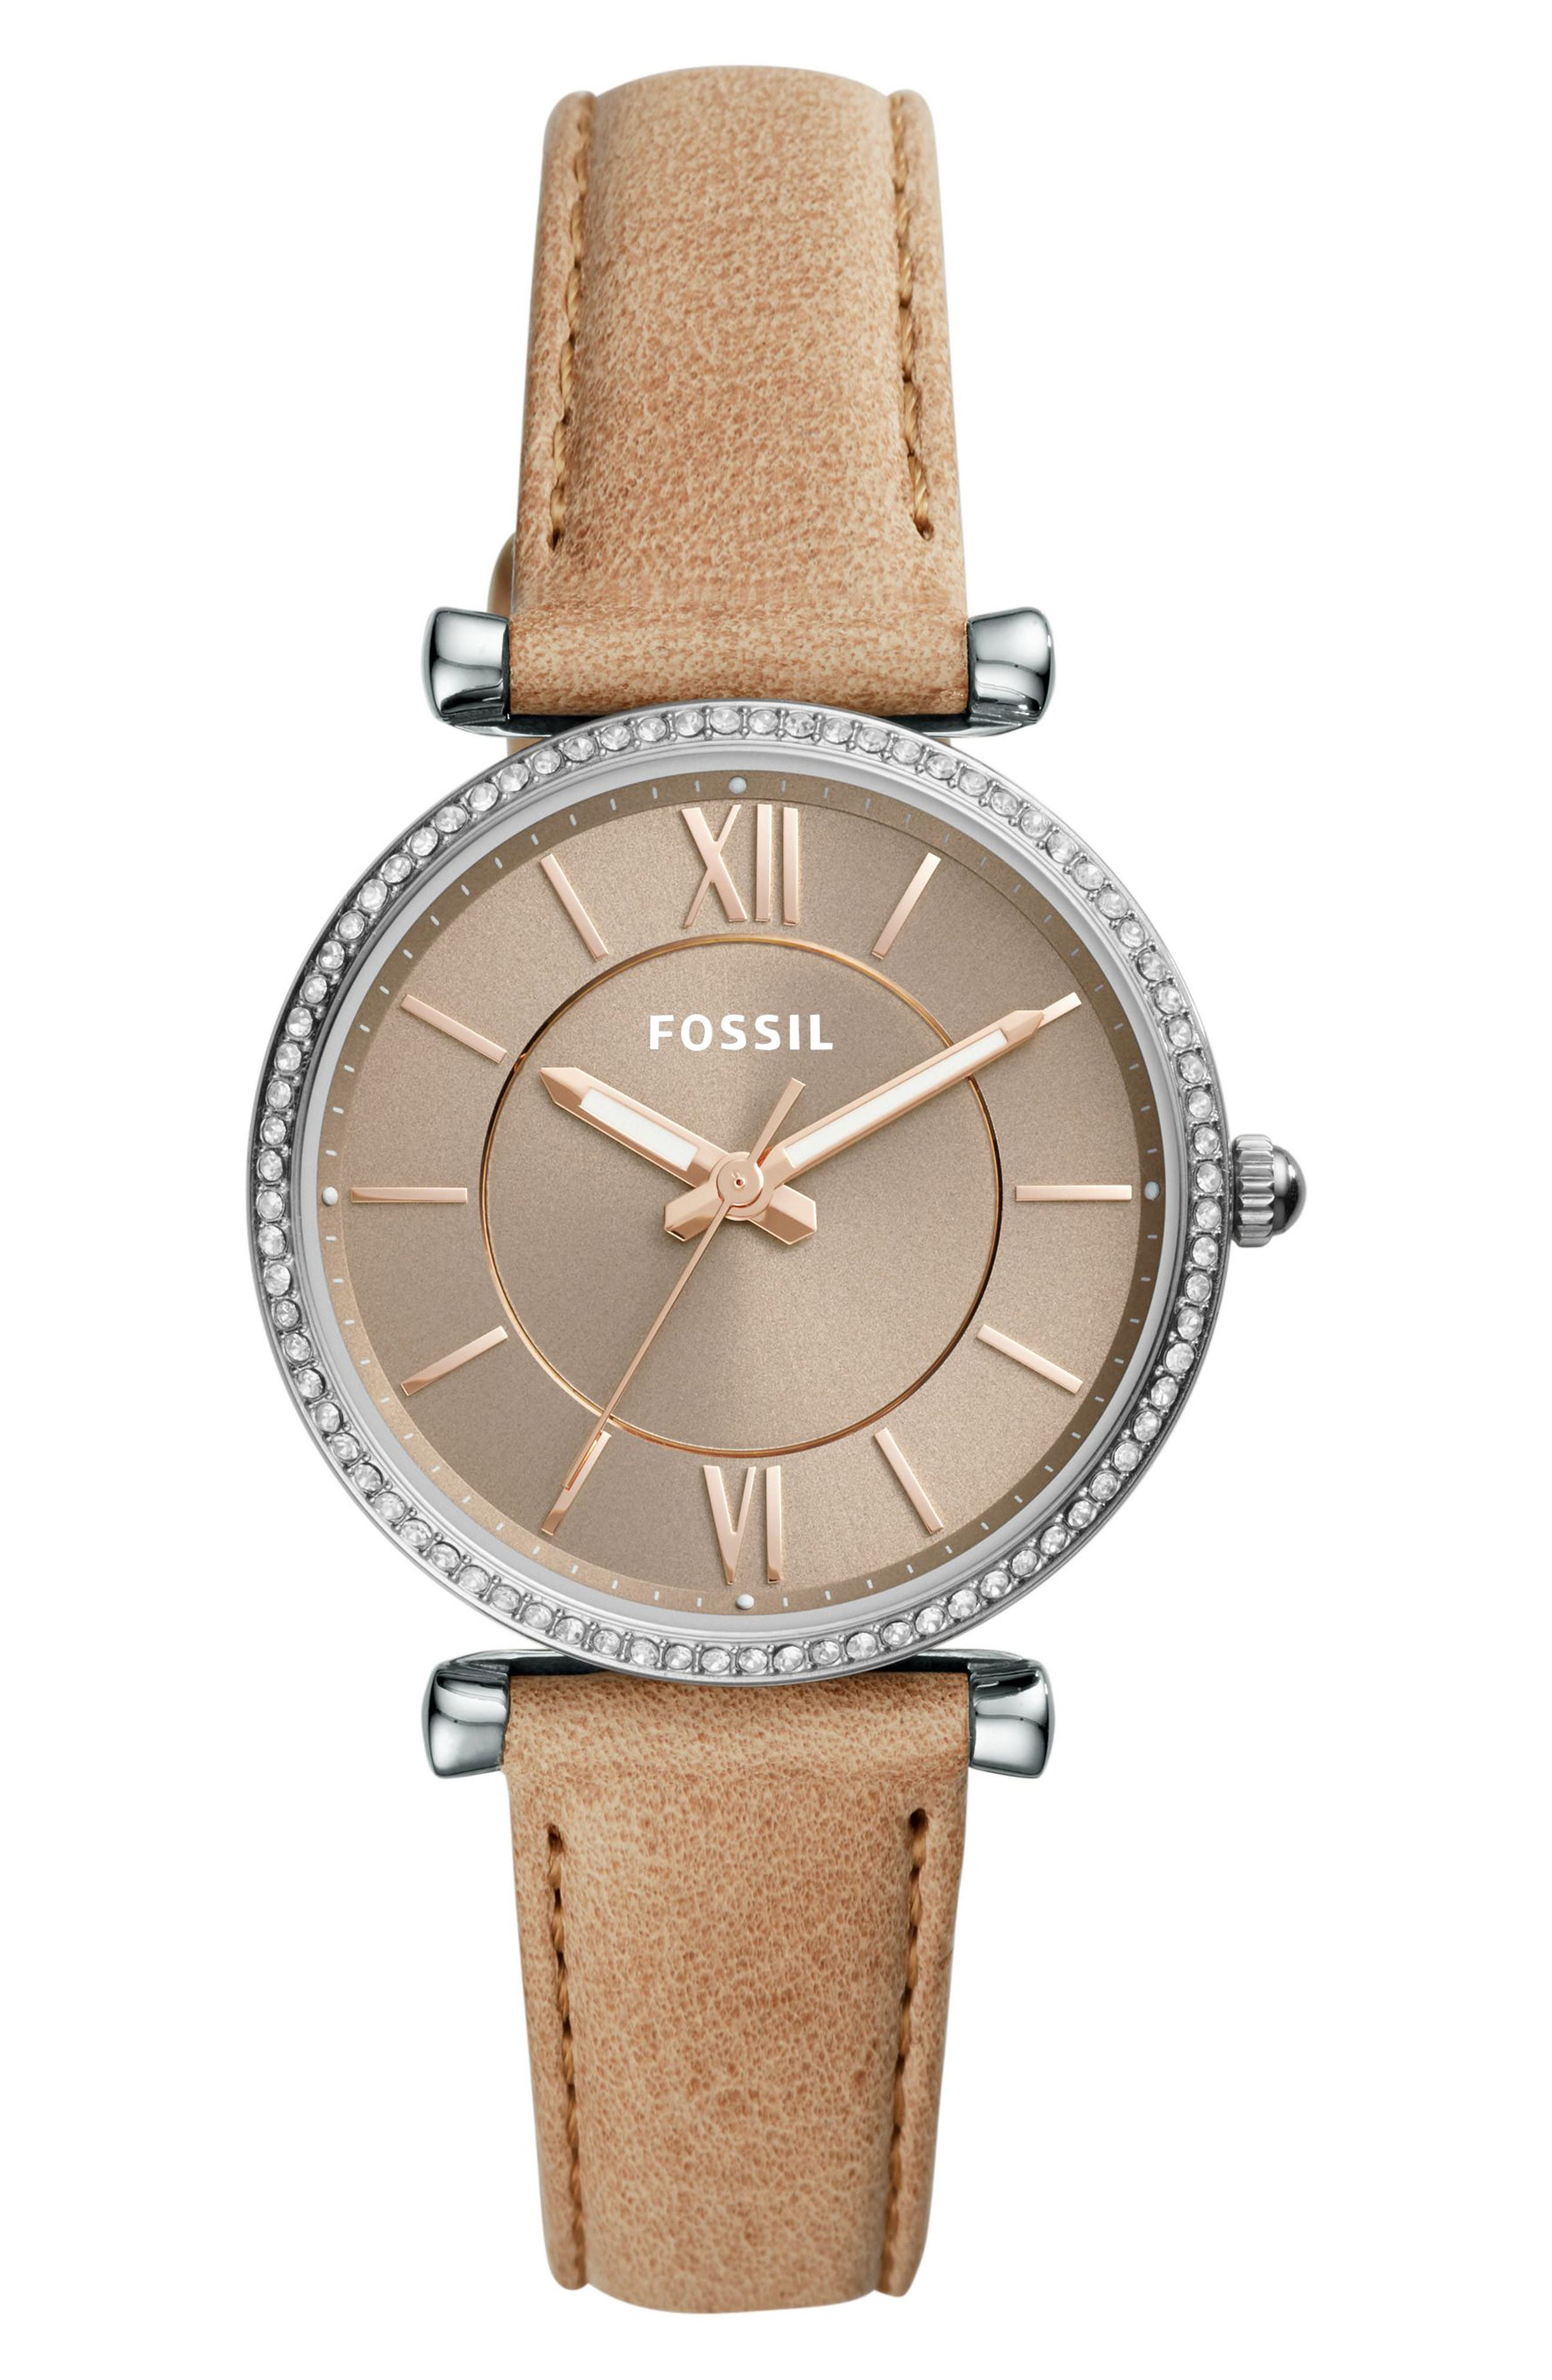 FOSSIL Carlie T-Bar Crystal Leather Strap Watch, 35mm, Main, color, BROWN/ SILVER